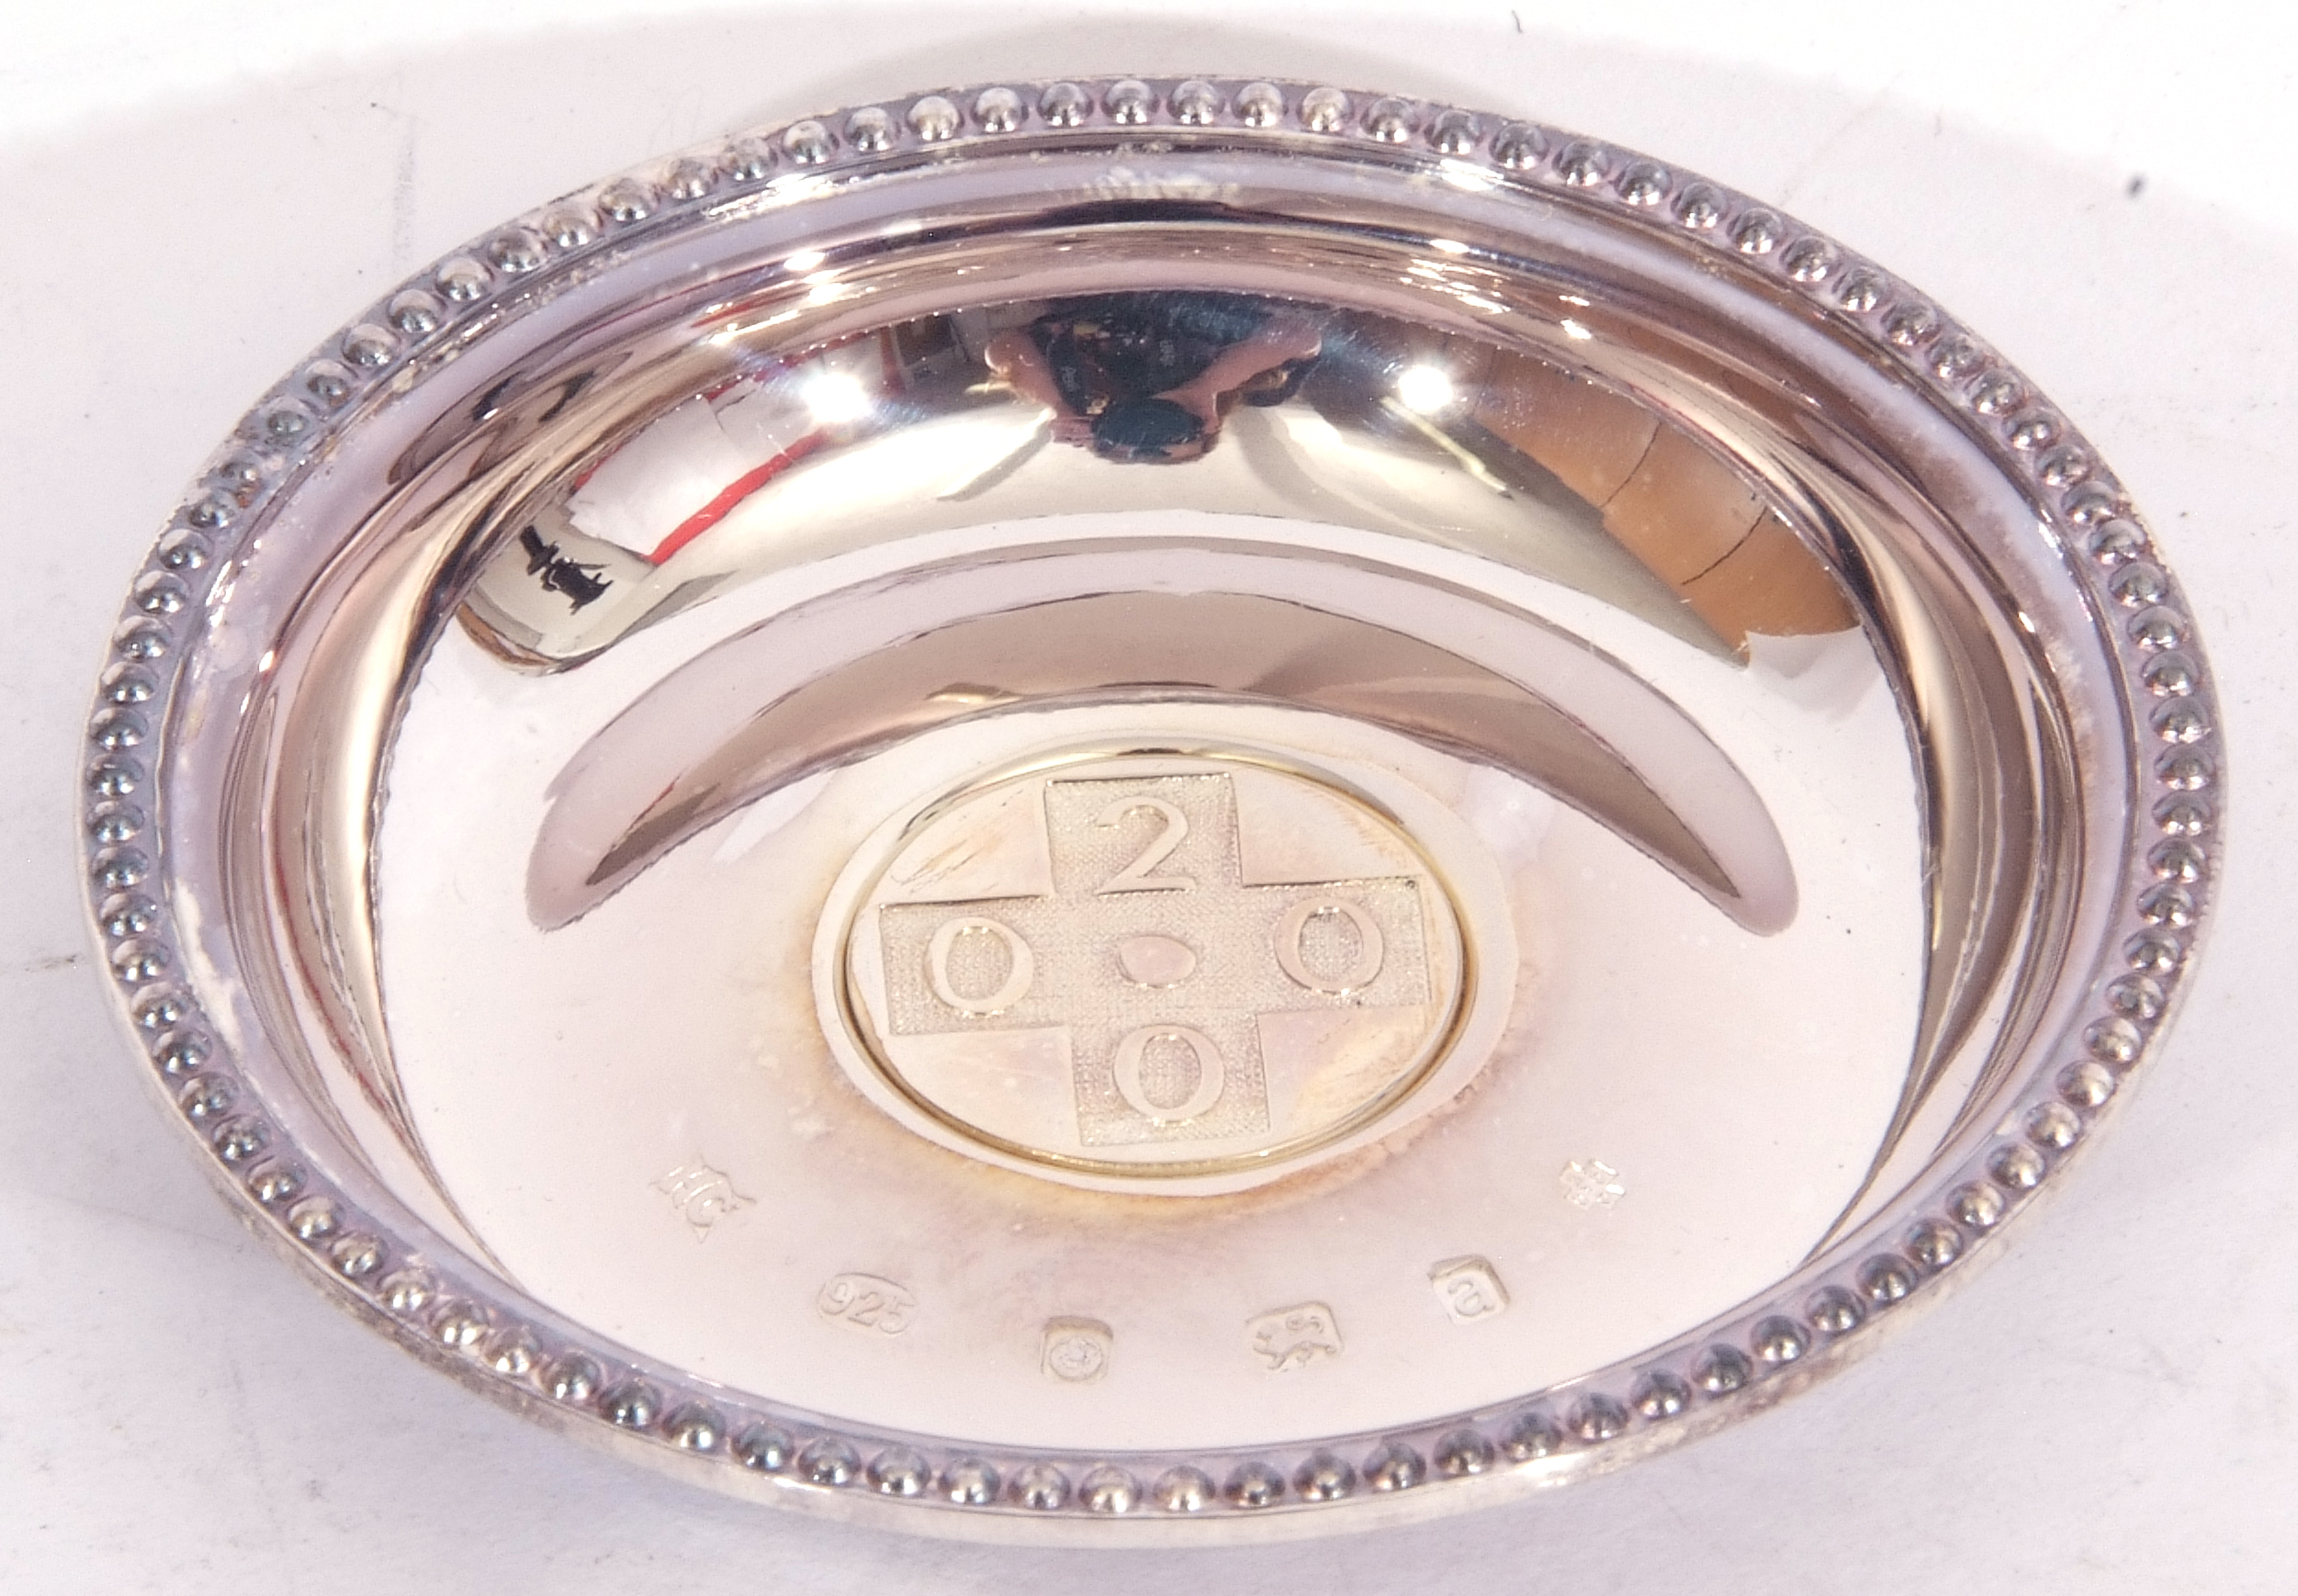 """Hallmarked silver miniature circular dish, """"2000"""" together with a French agricultural medallion - Image 3 of 9"""